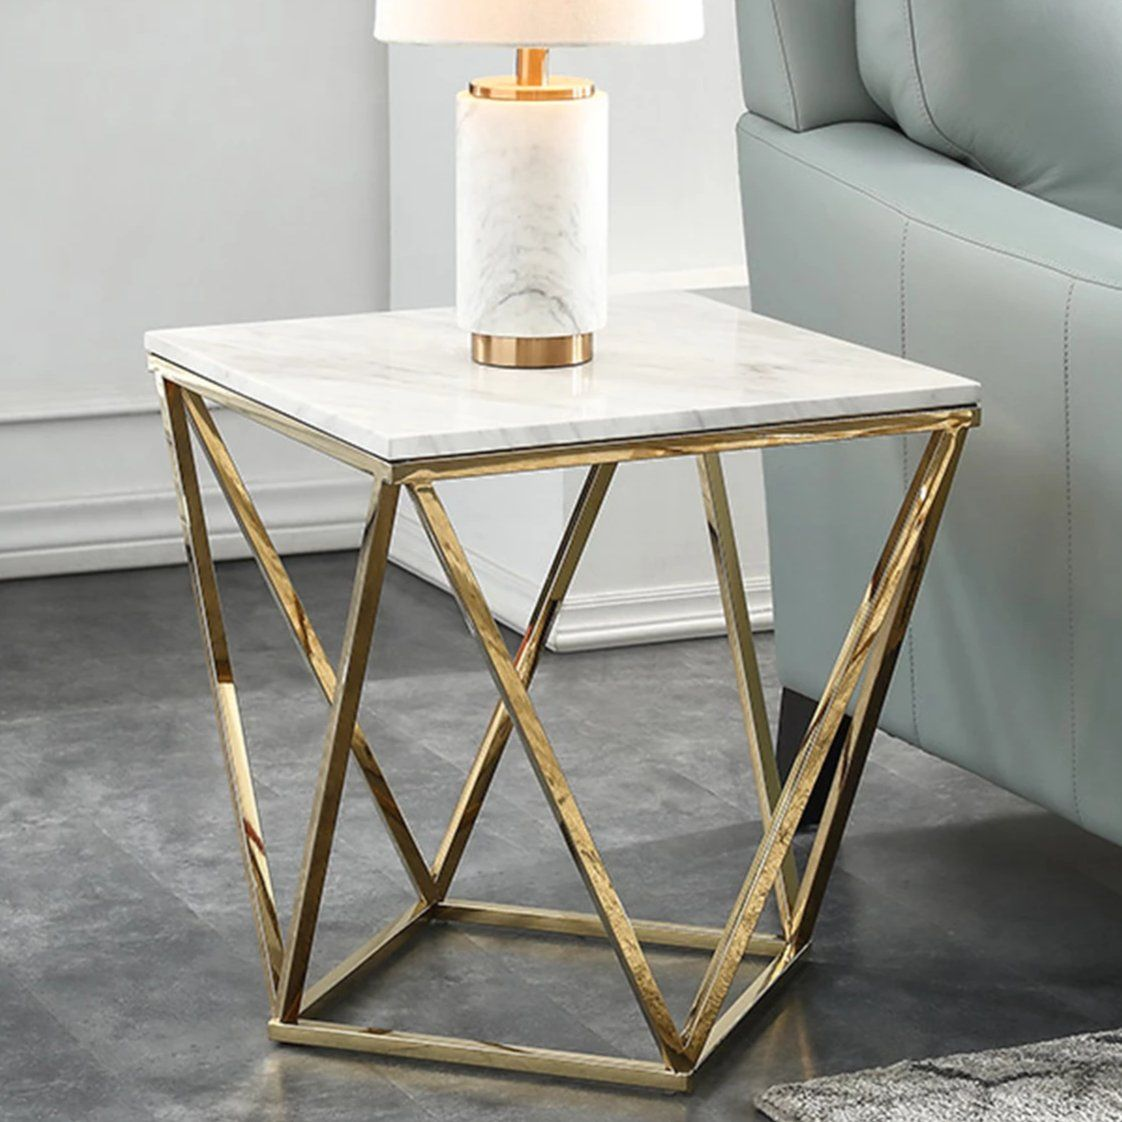 Marble Square End Table Side Table White Gold Marble Square White Side Tables Glass End Tables